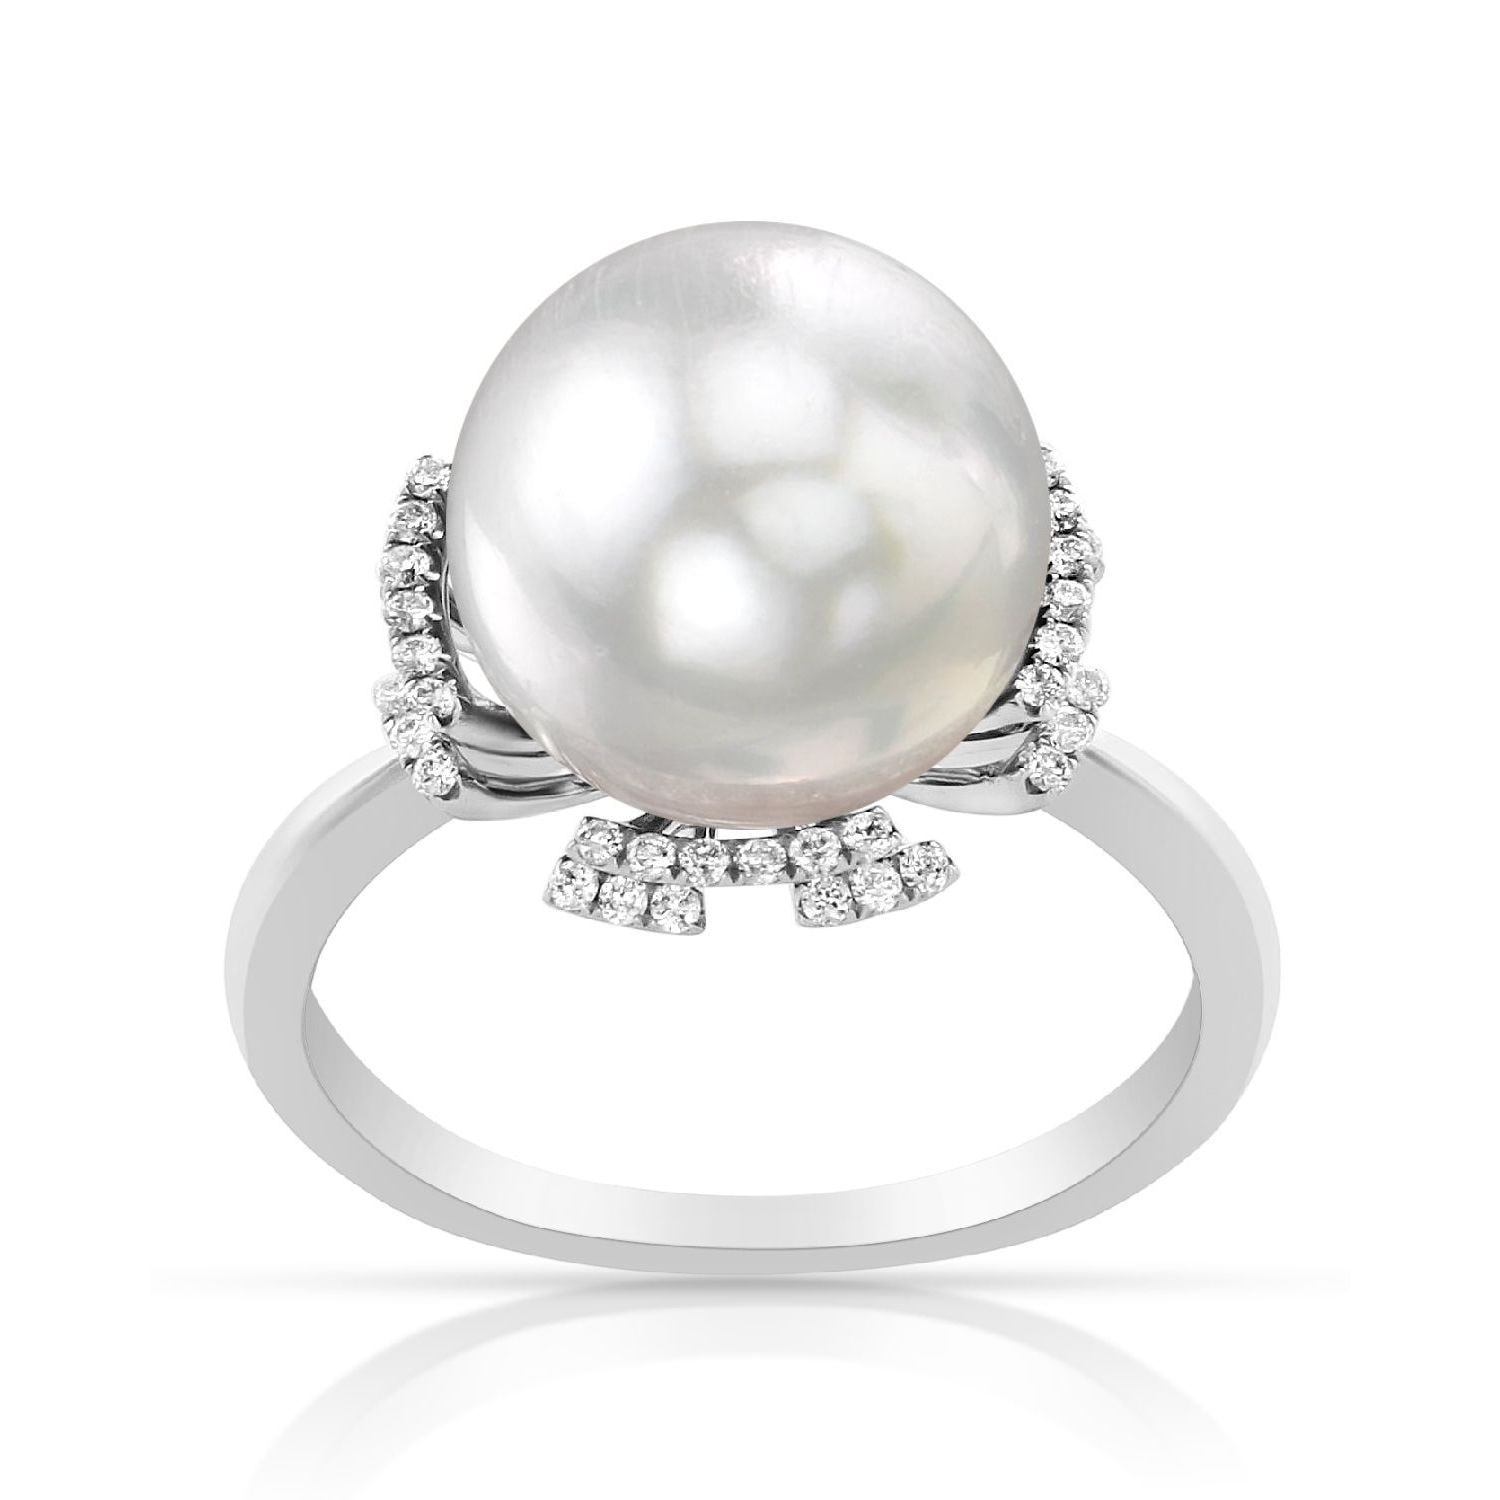 Radiance Pearl 14k Gold White South Sea Pearl and 1 6ct TDW Diamond Ring (G-H, SI1-SI2) by Overstock